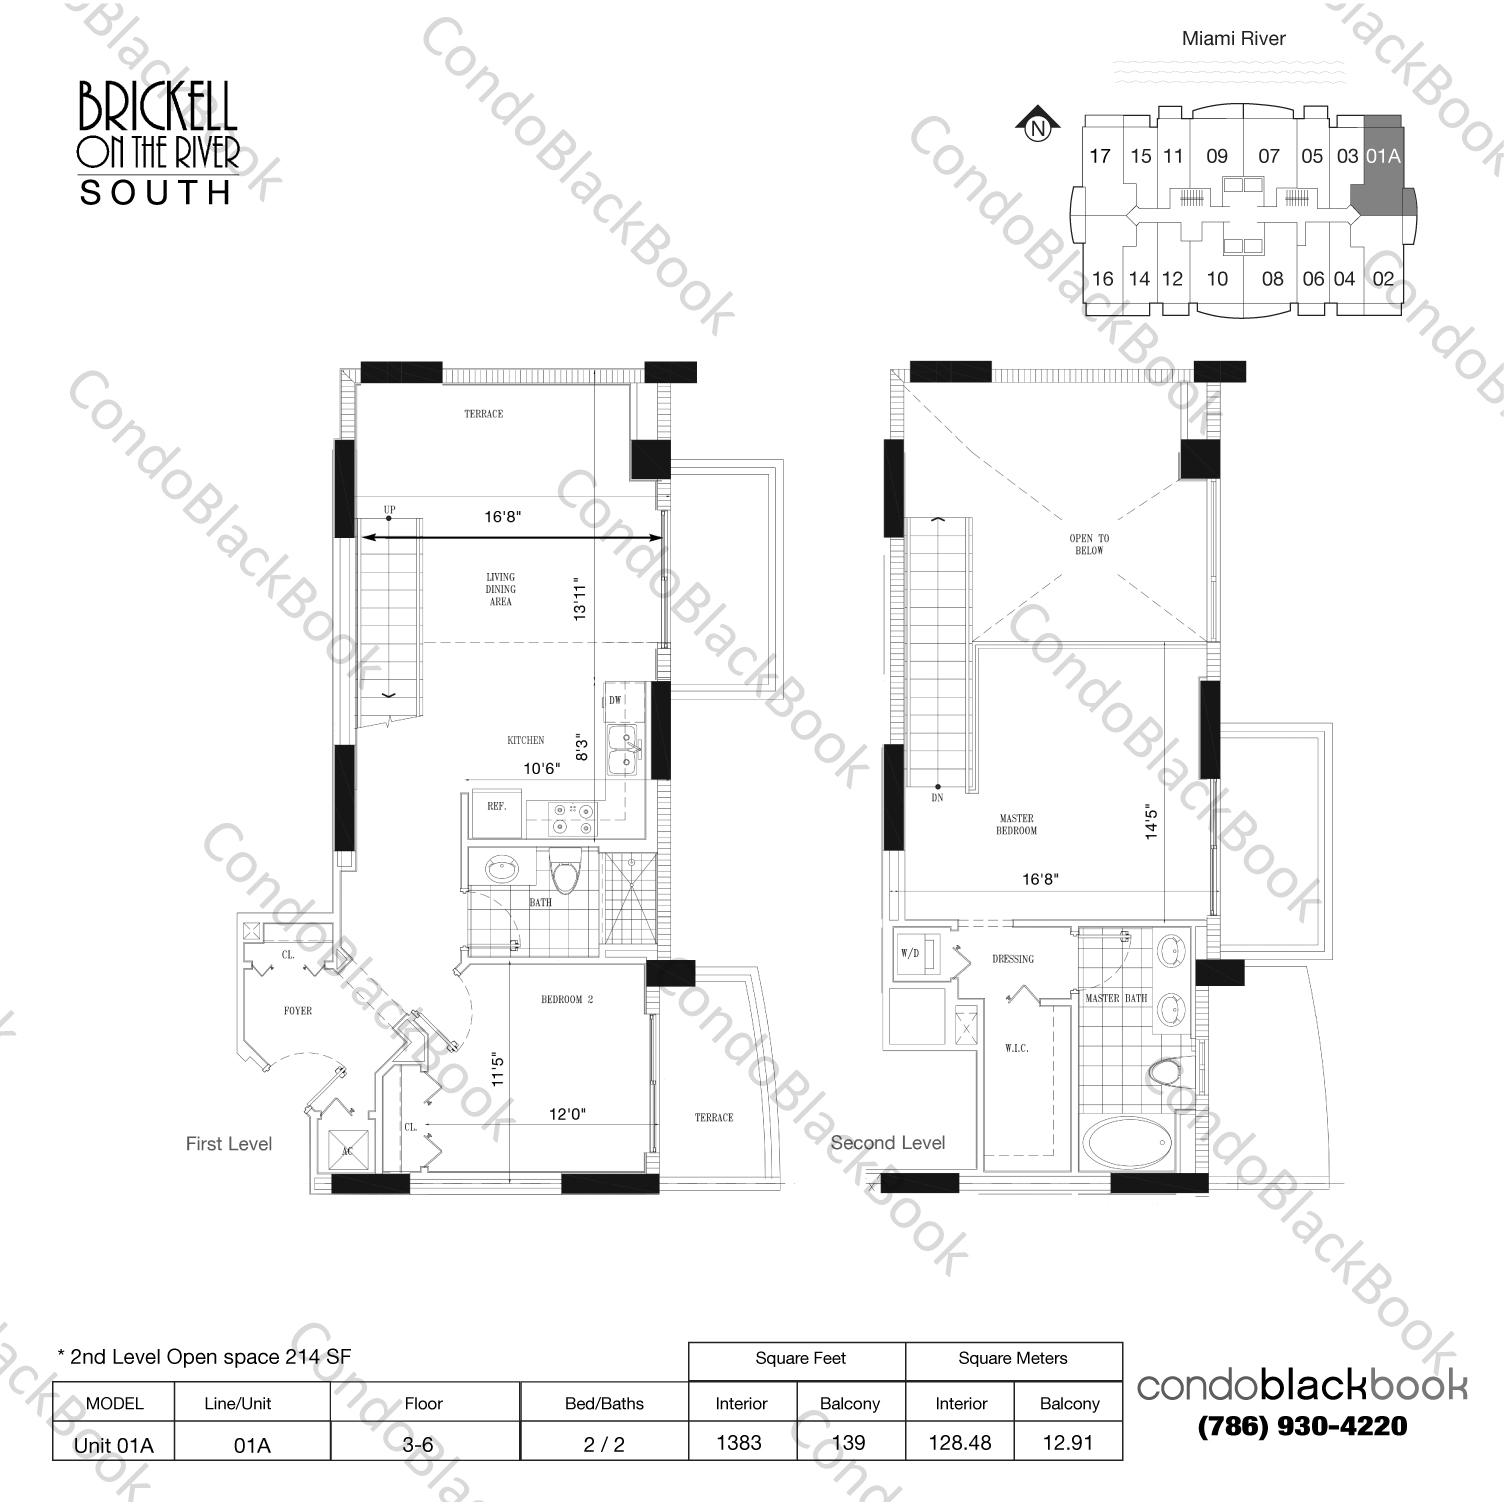 Floor plan for Brickell on the River South Brickell Miami, model Unit 01A, line 01, 2 / 2 bedrooms, 1169 sq ft